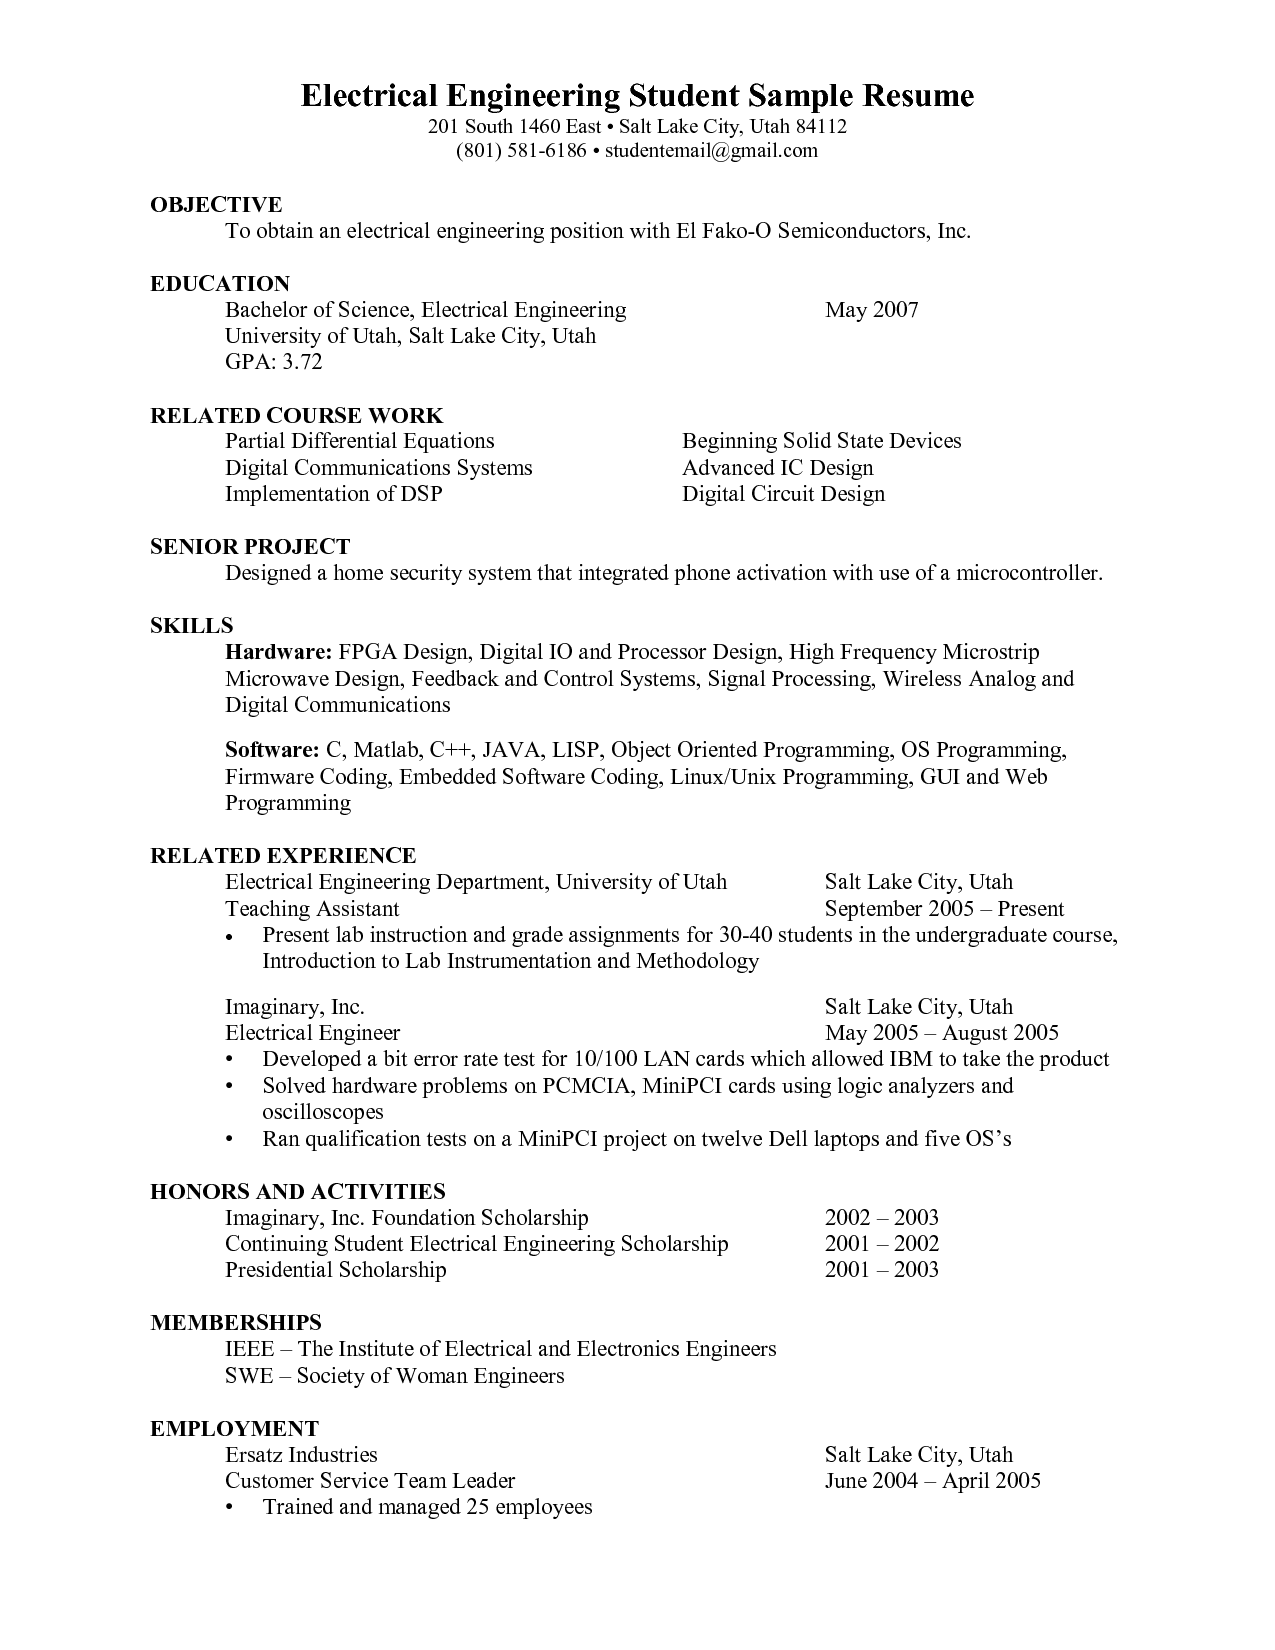 Service Engineer Resume Format Engineering Student Resume Google Search Resumes